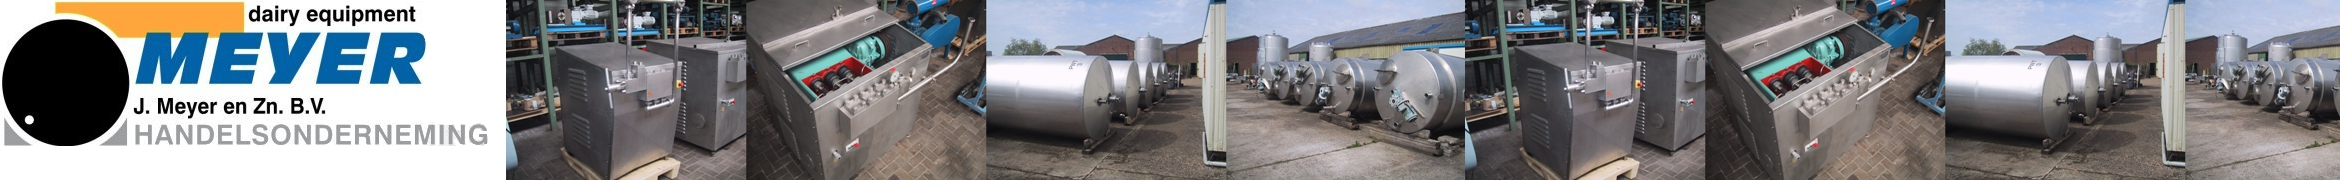 Dairy Equipment Meyer